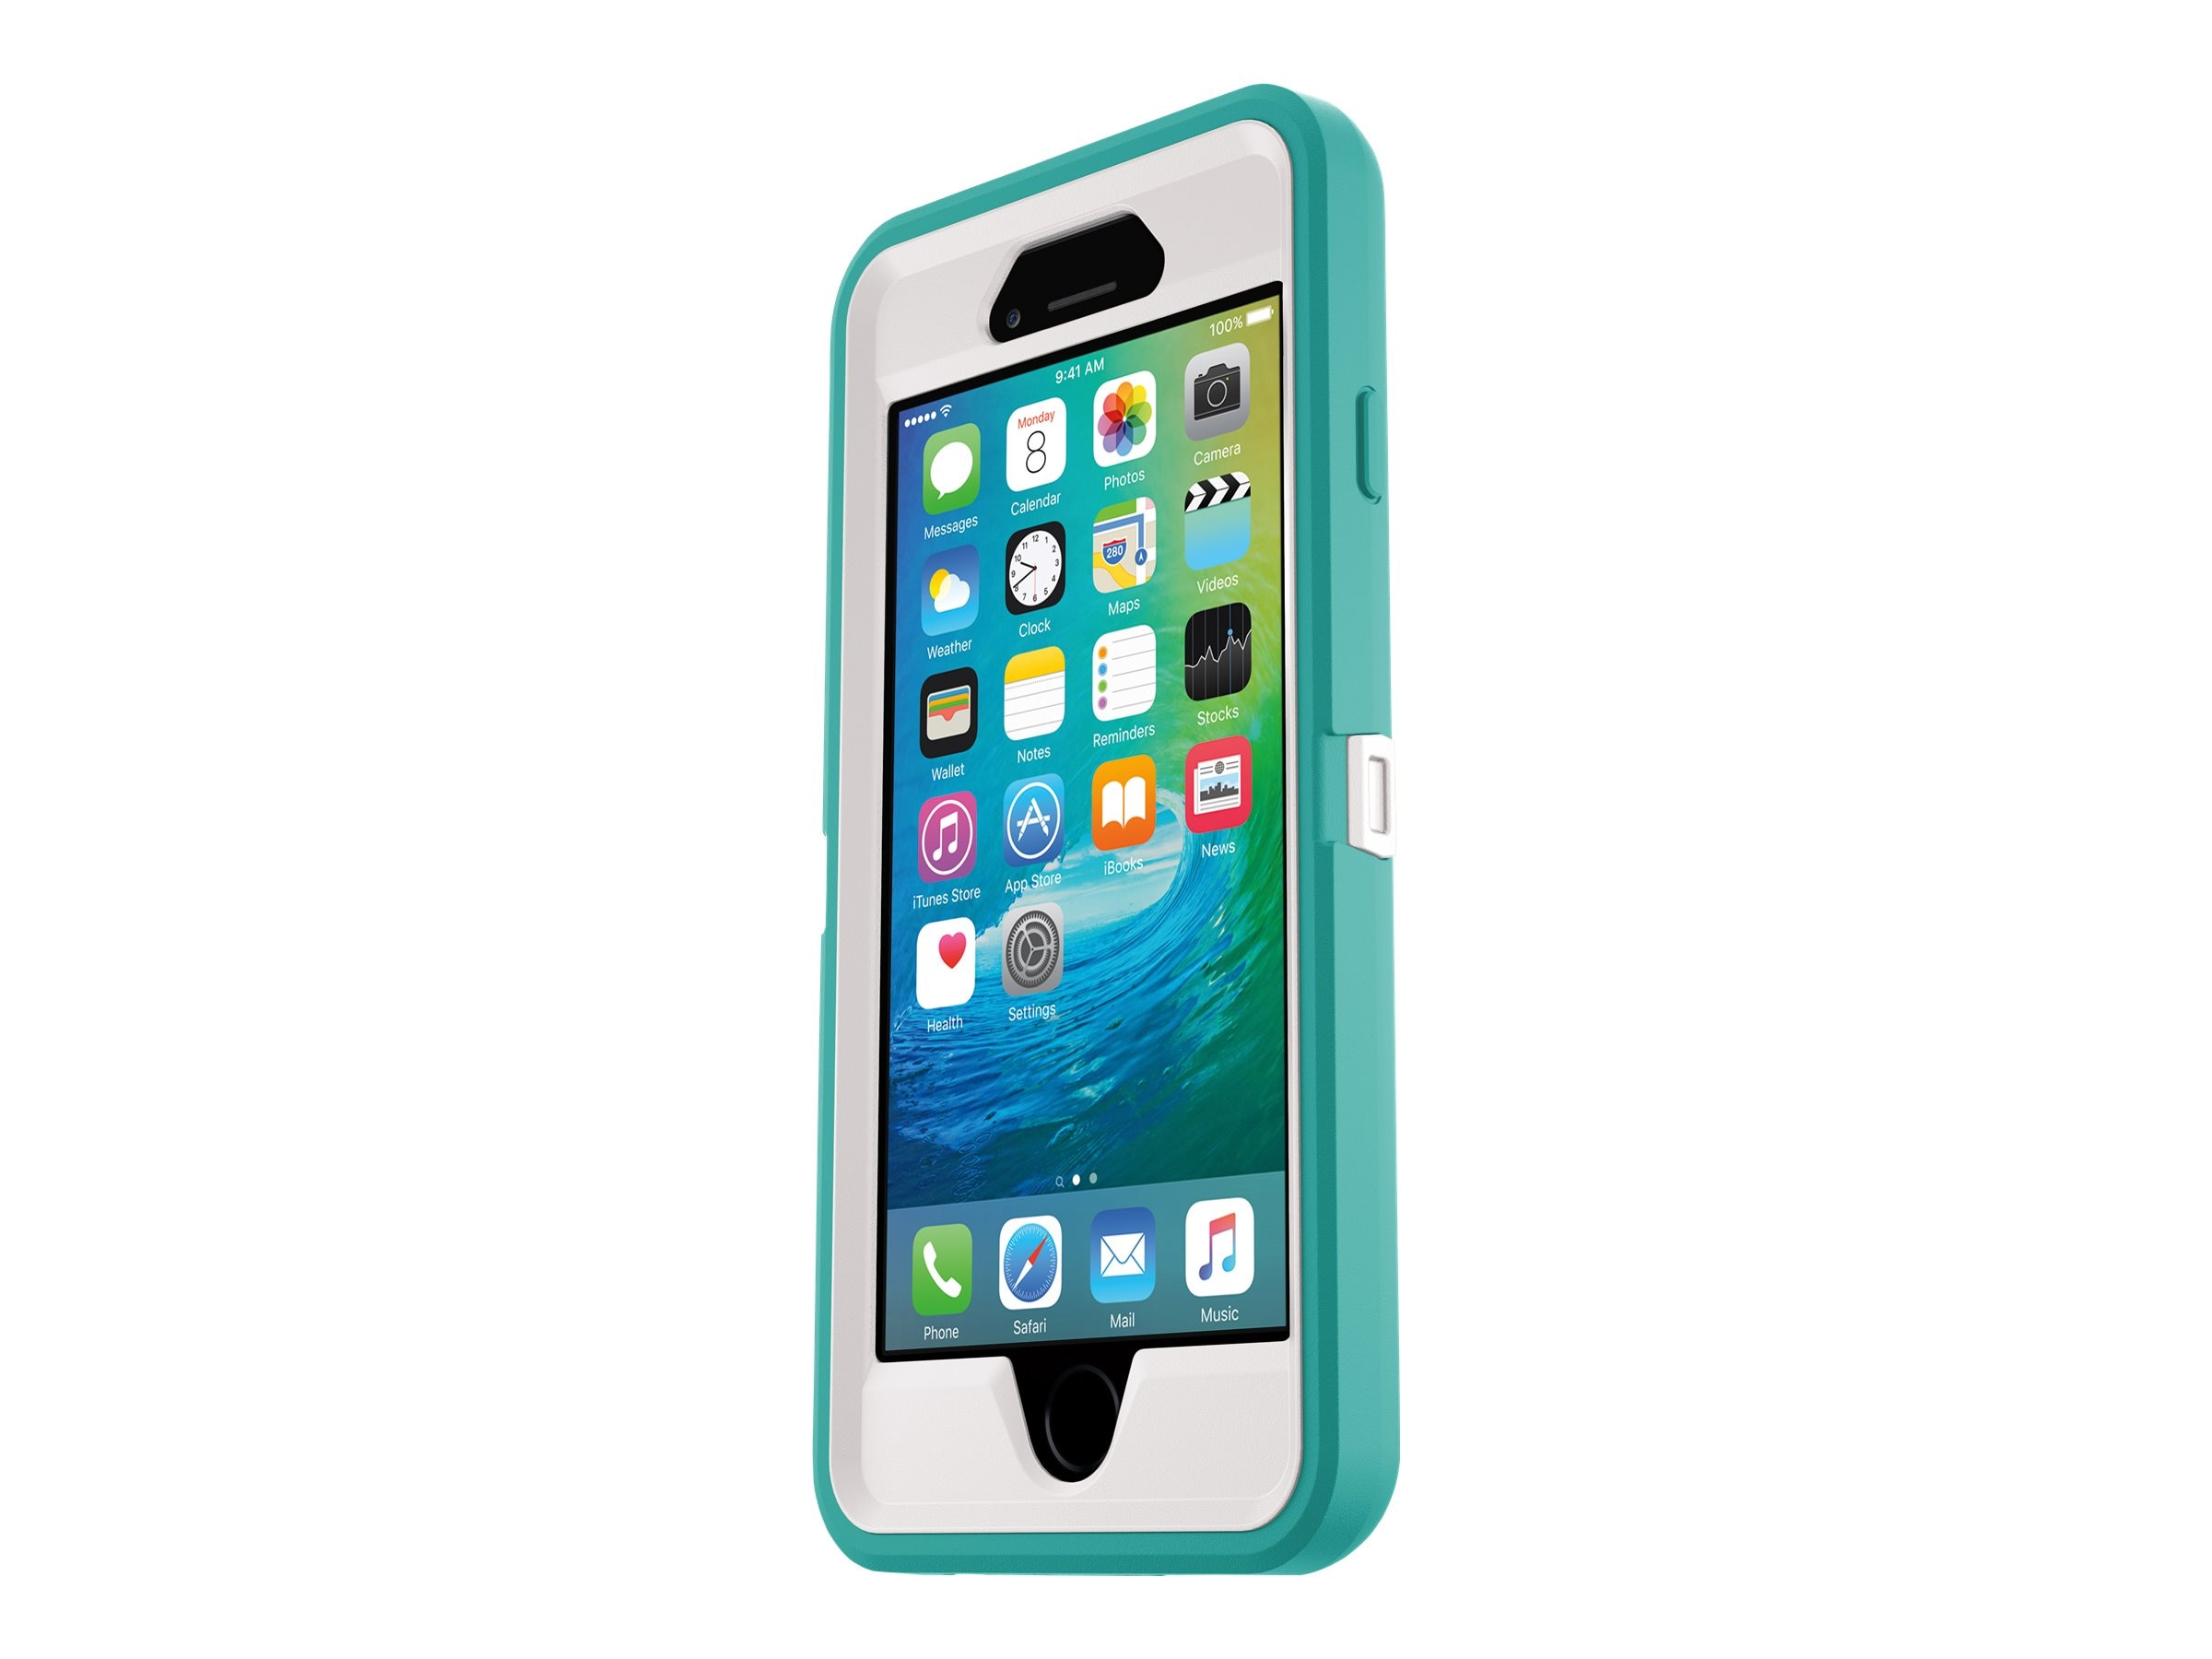 OtterBox iPhone 6s Defender Series Case, Seacrest, 77-52136, 30704076, Carrying Cases - Phones/PDAs